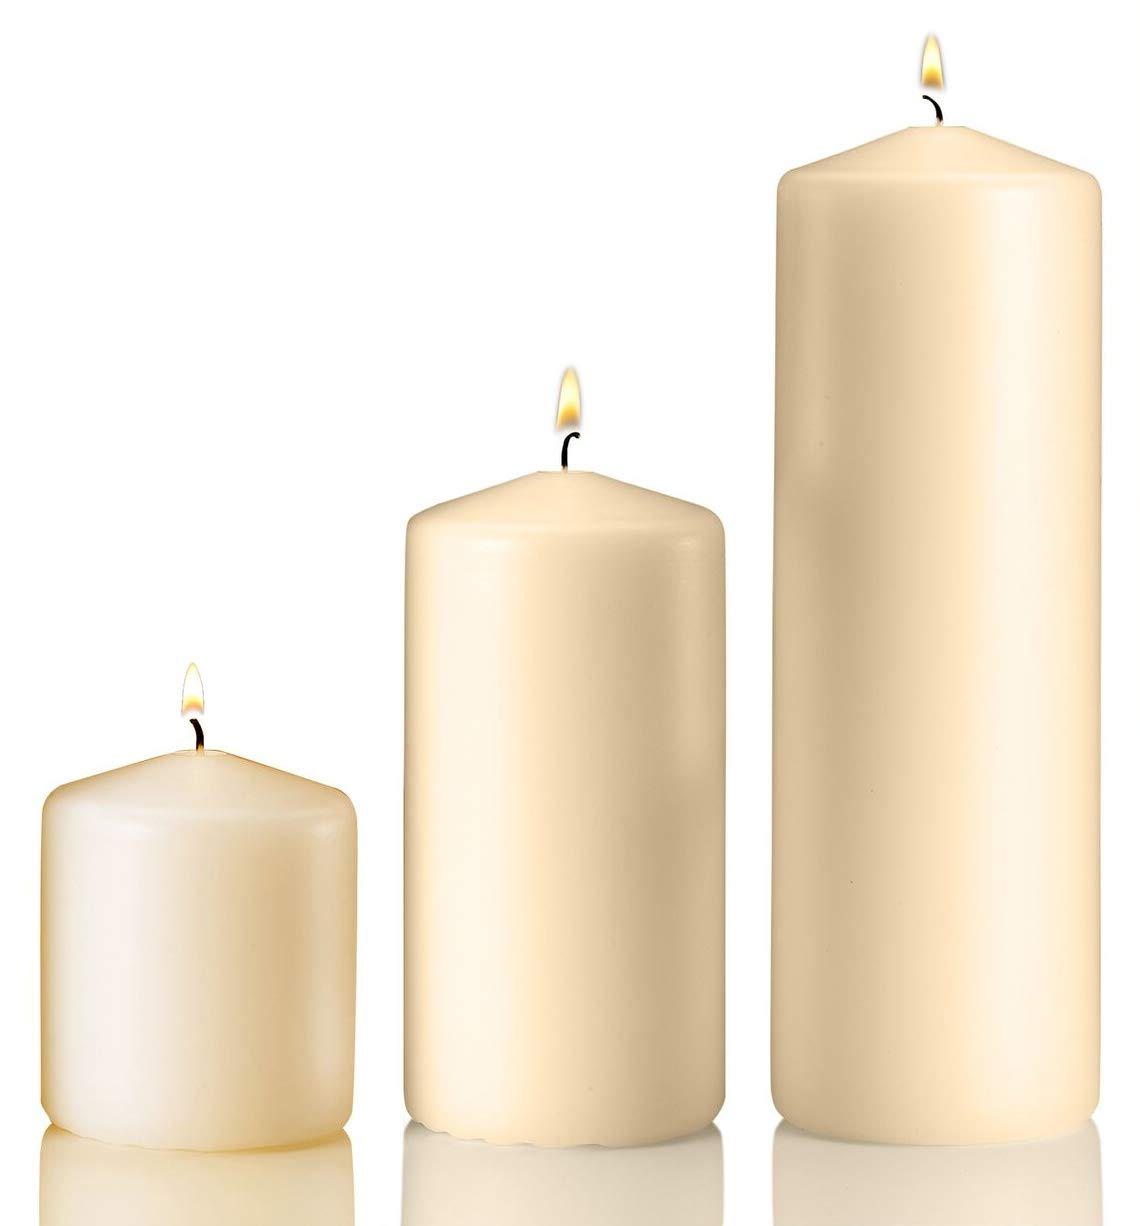 Light In The Dark Vanilla Pillar Candle Variety Set - 3 Vanilla Unscented Pillar Candles - Set Includes 3'', 6'' and 9'' Candle